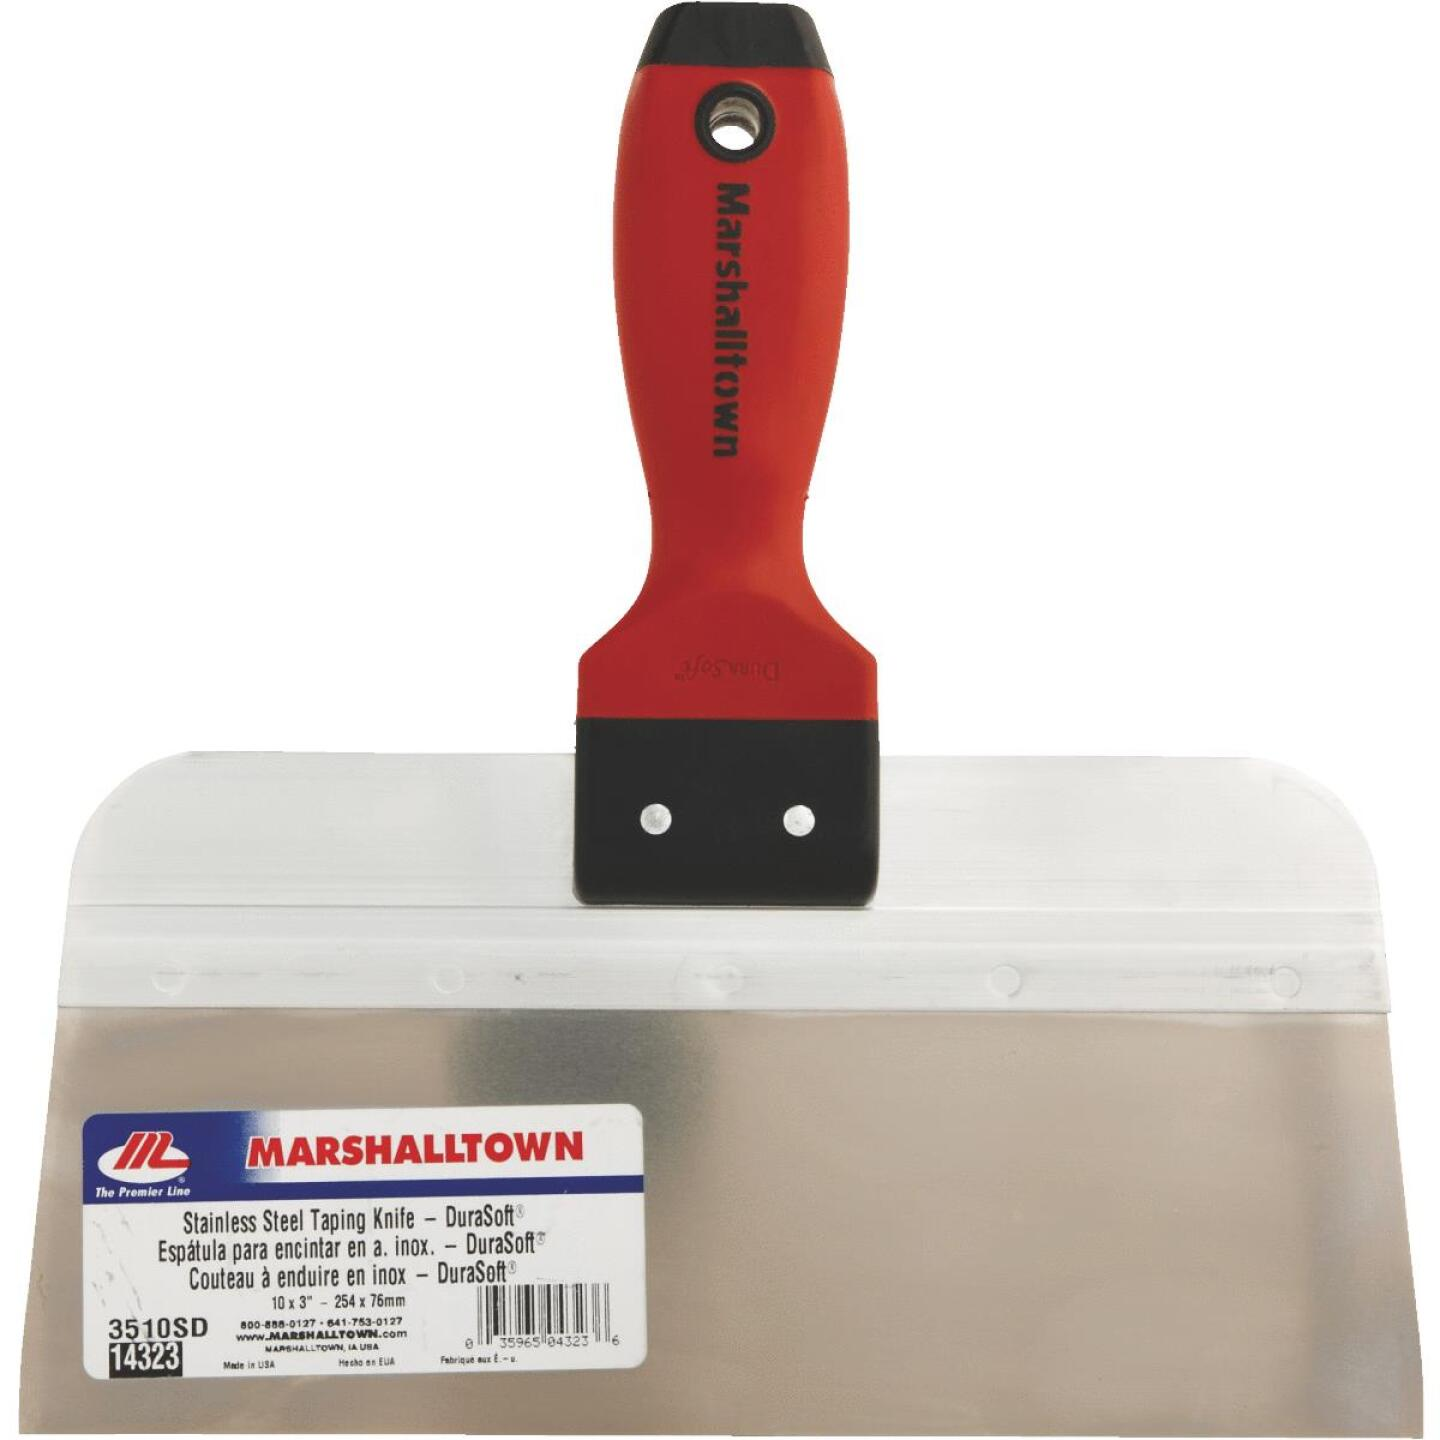 Marshalltown 10 In. Stainless Steel Taping Knife Image 2